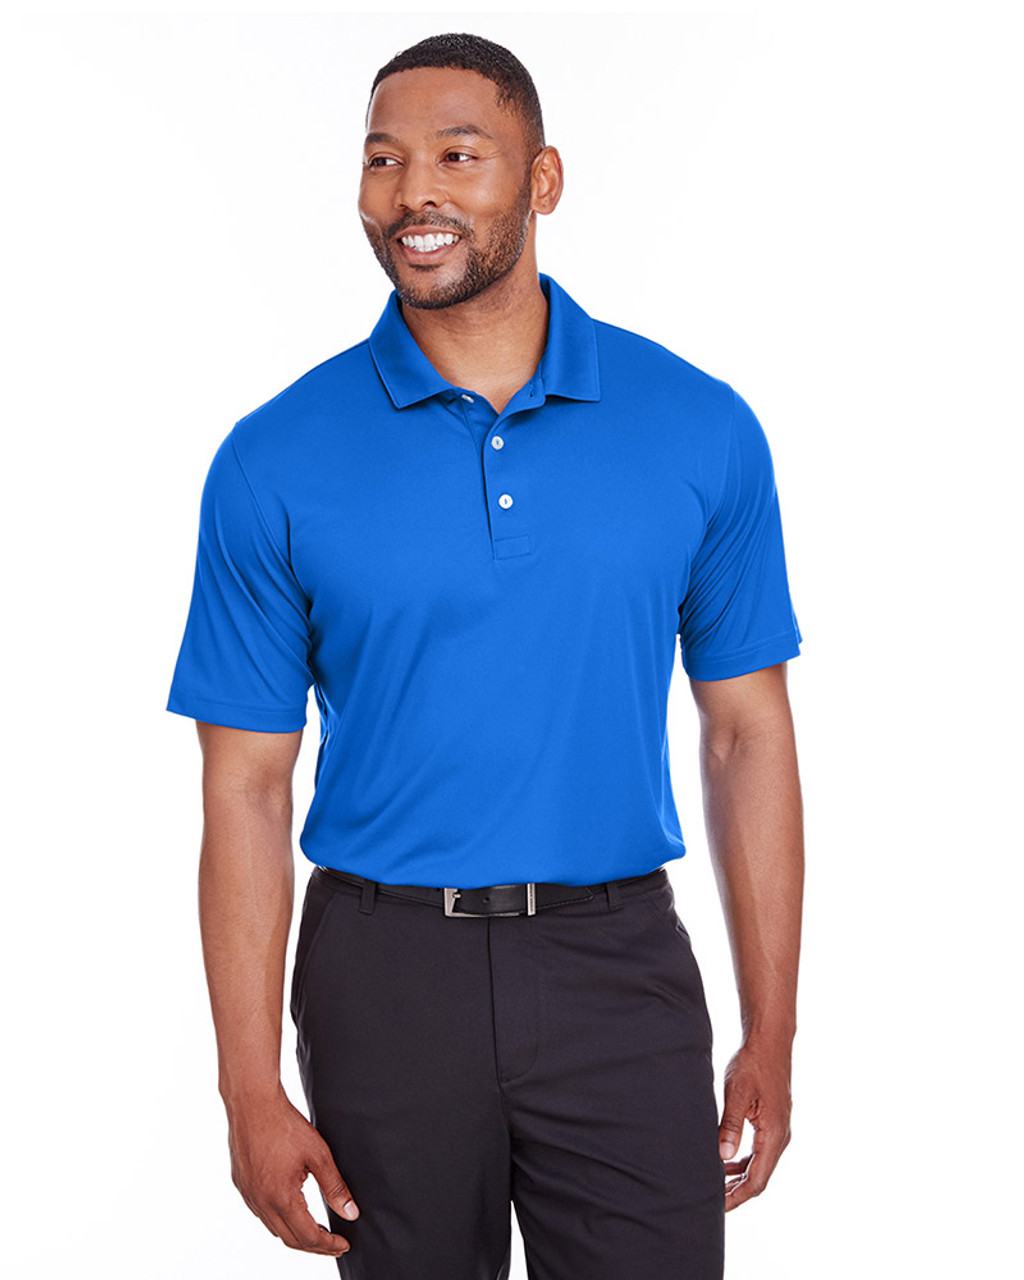 Lapis Blue - 596799 Puma Golf Men's Icon Golf Polo | Blankclothing.ca